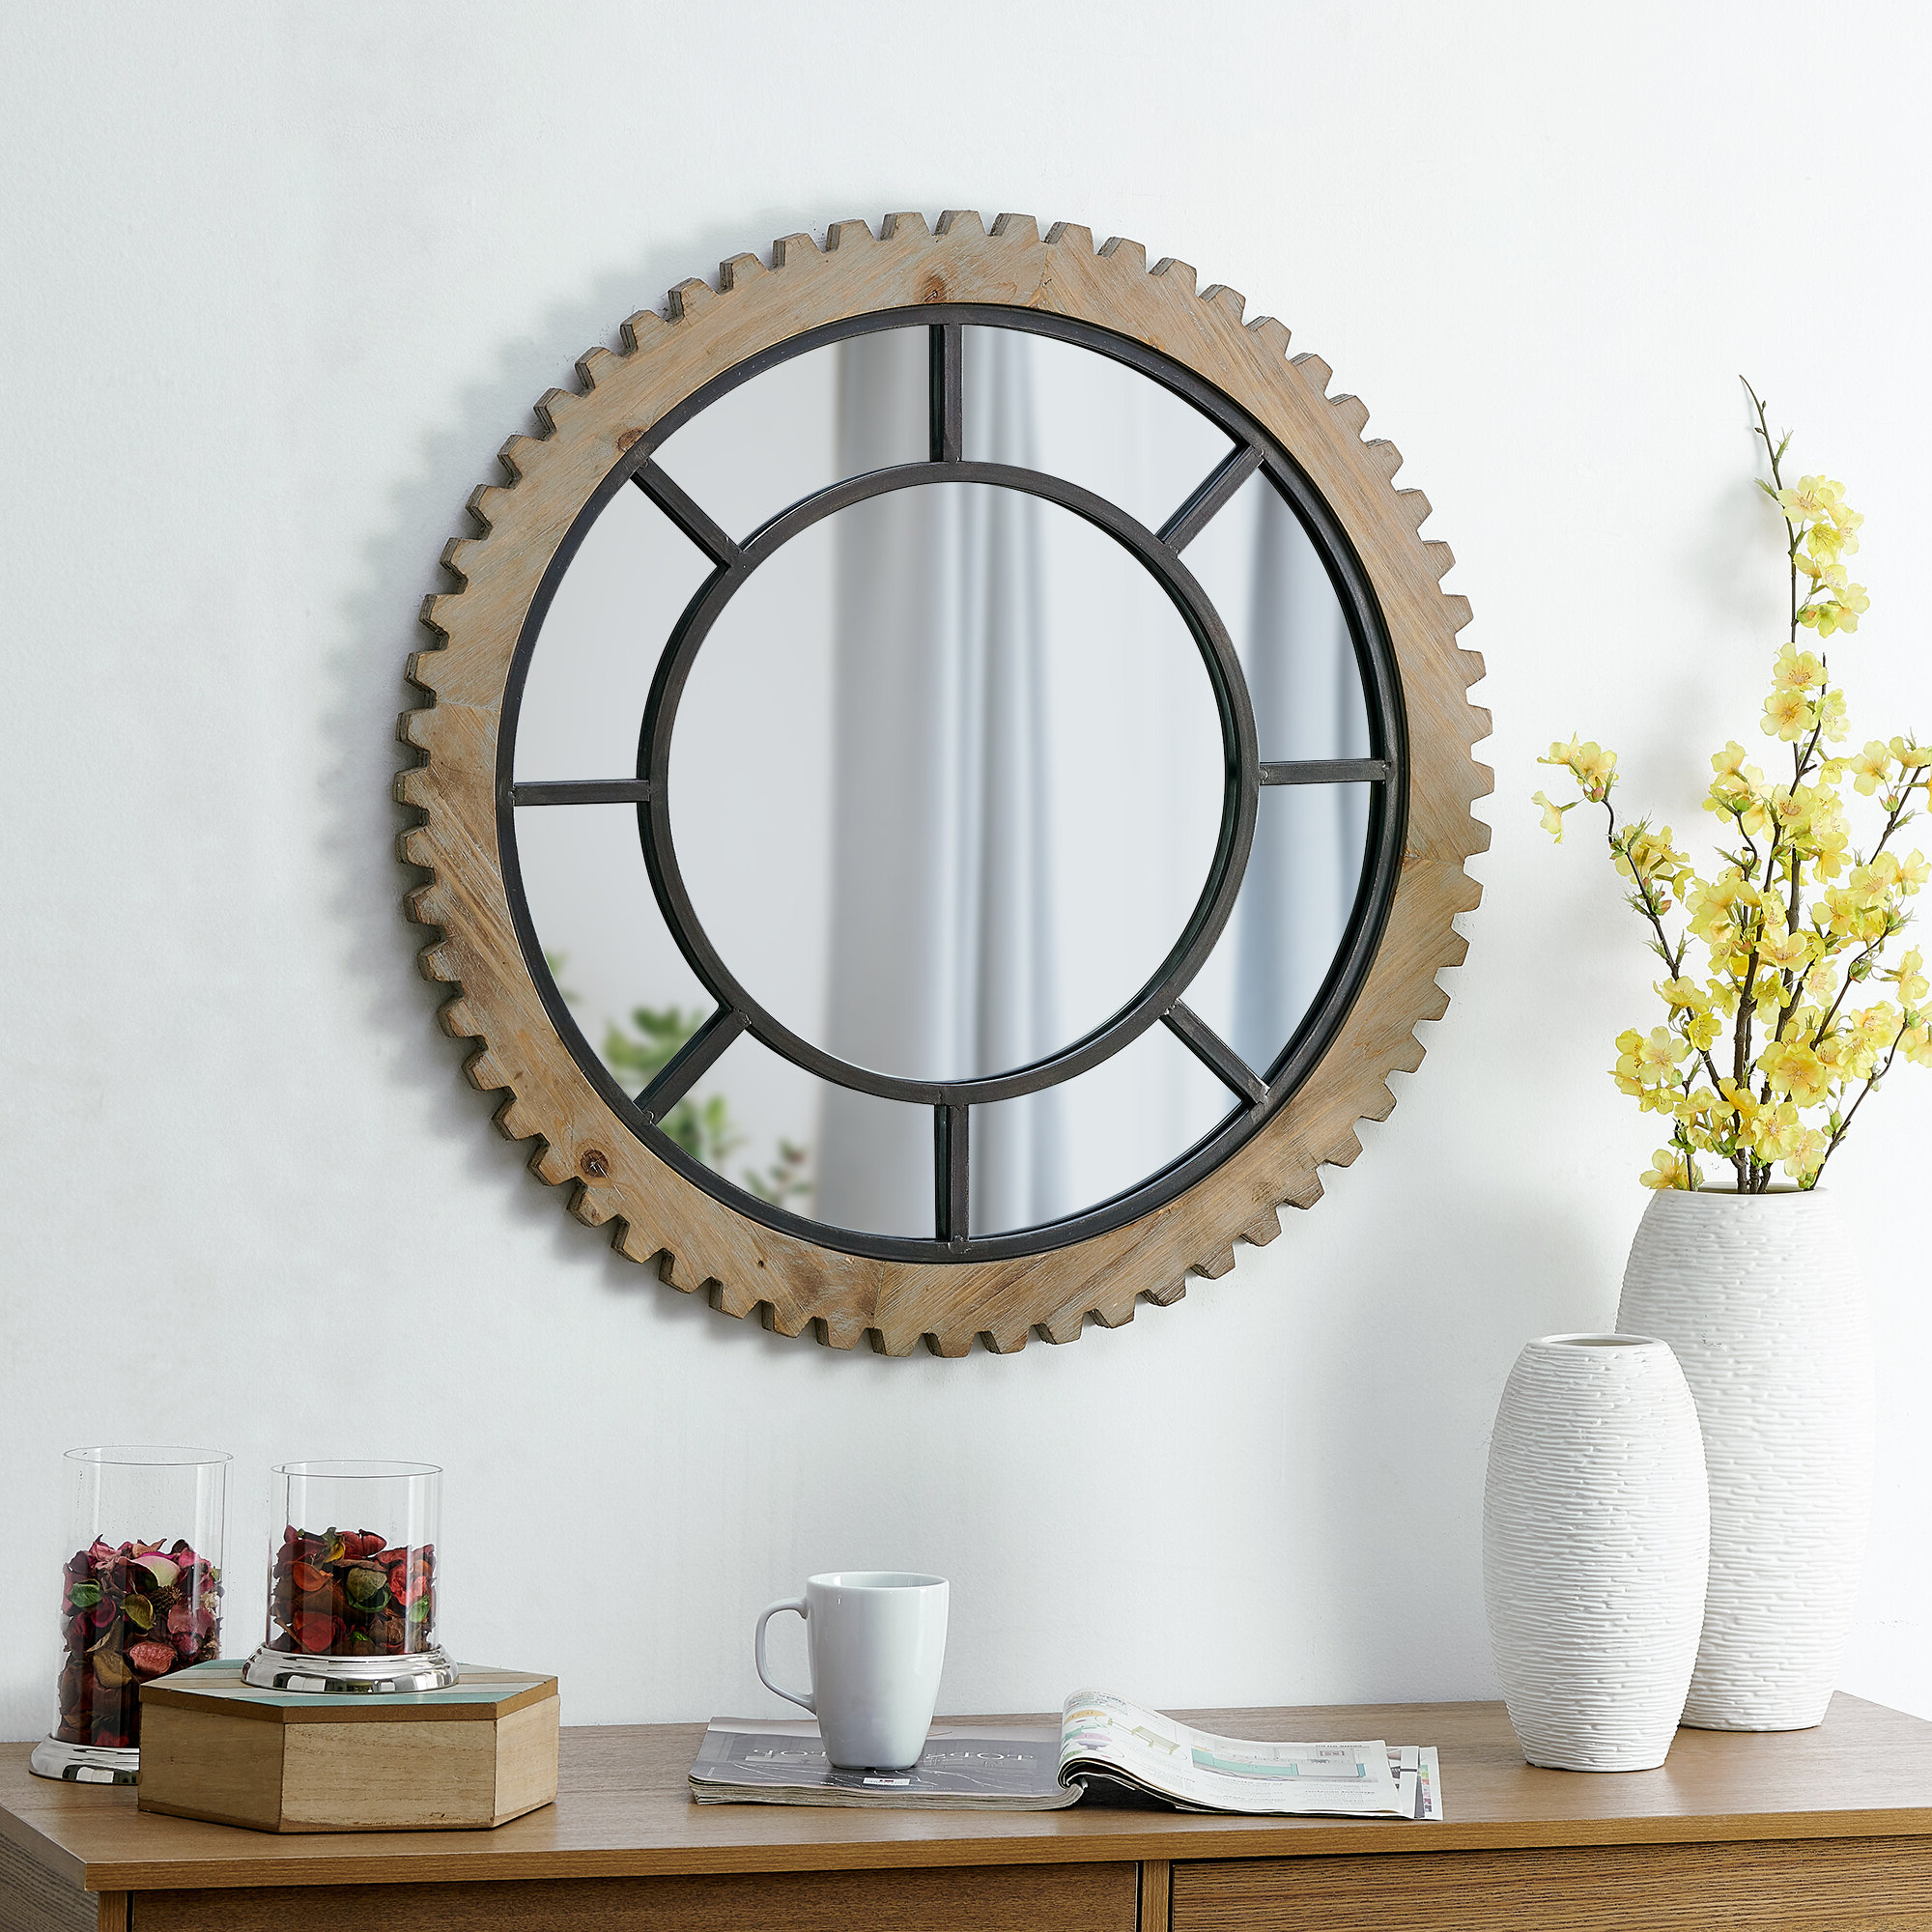 Enos Gear Mirror Industrial Accent Mirror Pertaining To Best And Newest Ogier Accent Mirrors (Gallery 10 of 20)